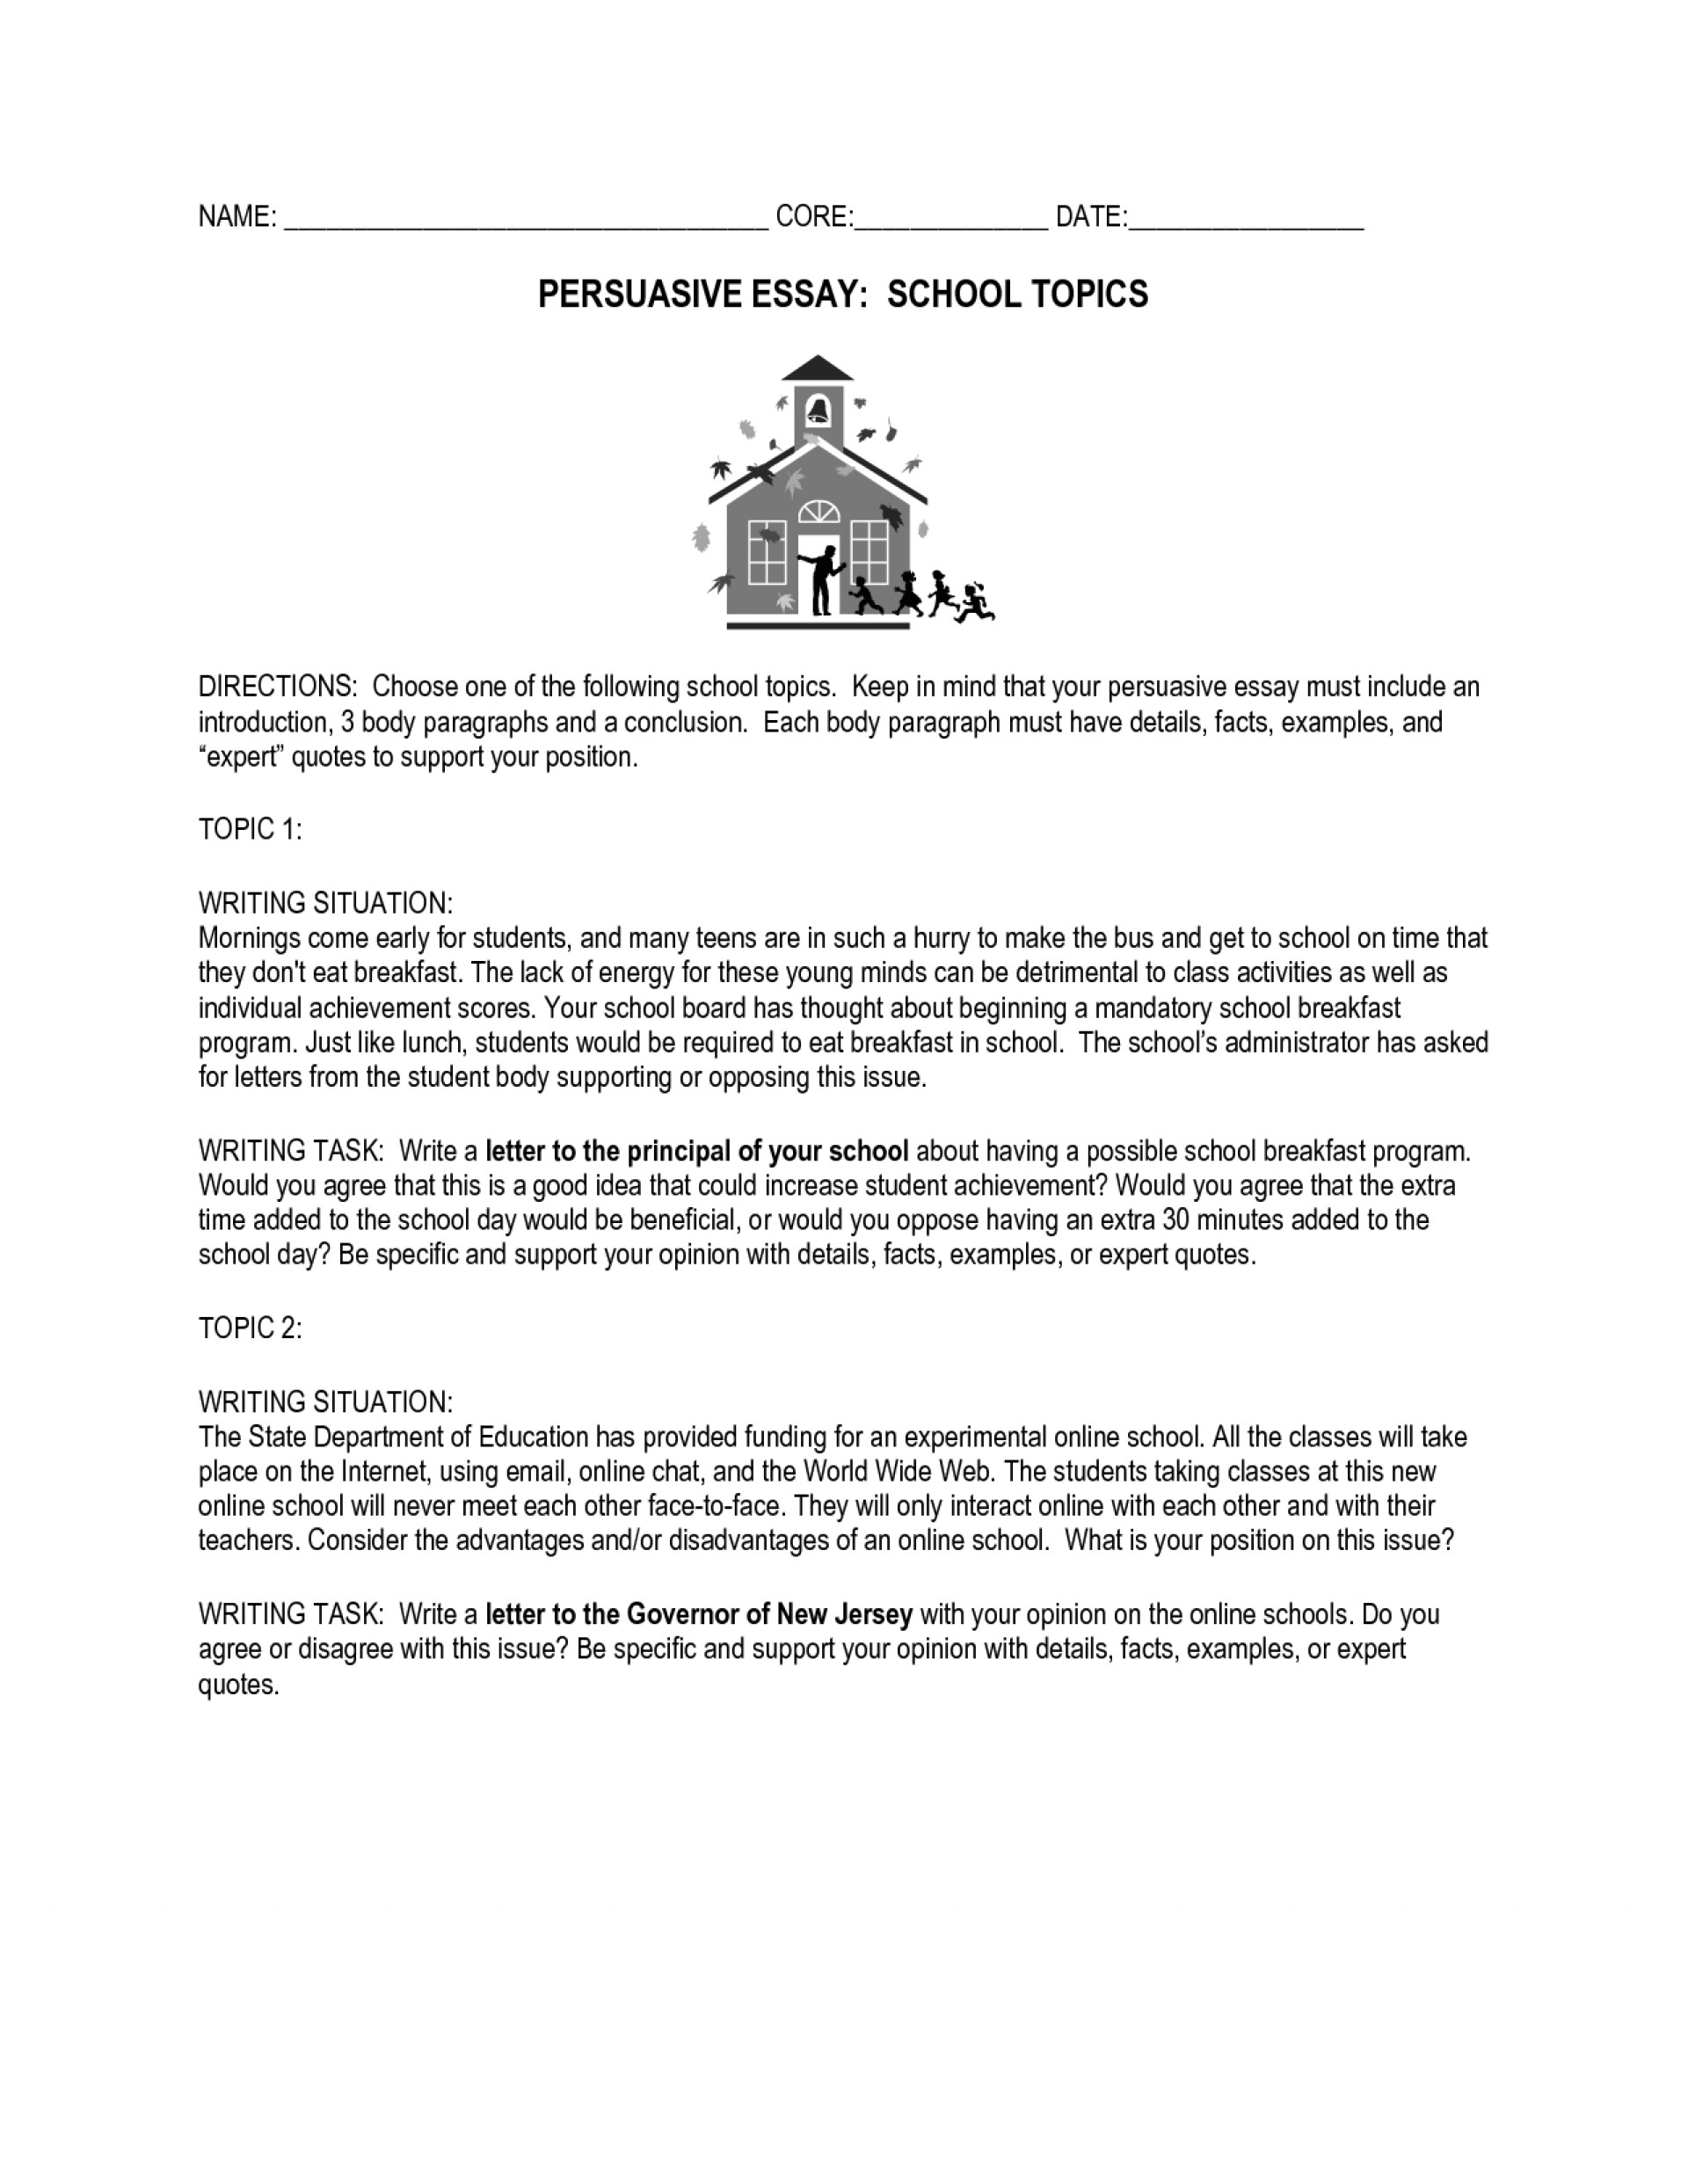 008 Writing Conclusion To An Argumentative Essay On School How Conclude Top Teach Write A Closing Paragraph For Step By Ppt Middle 1920